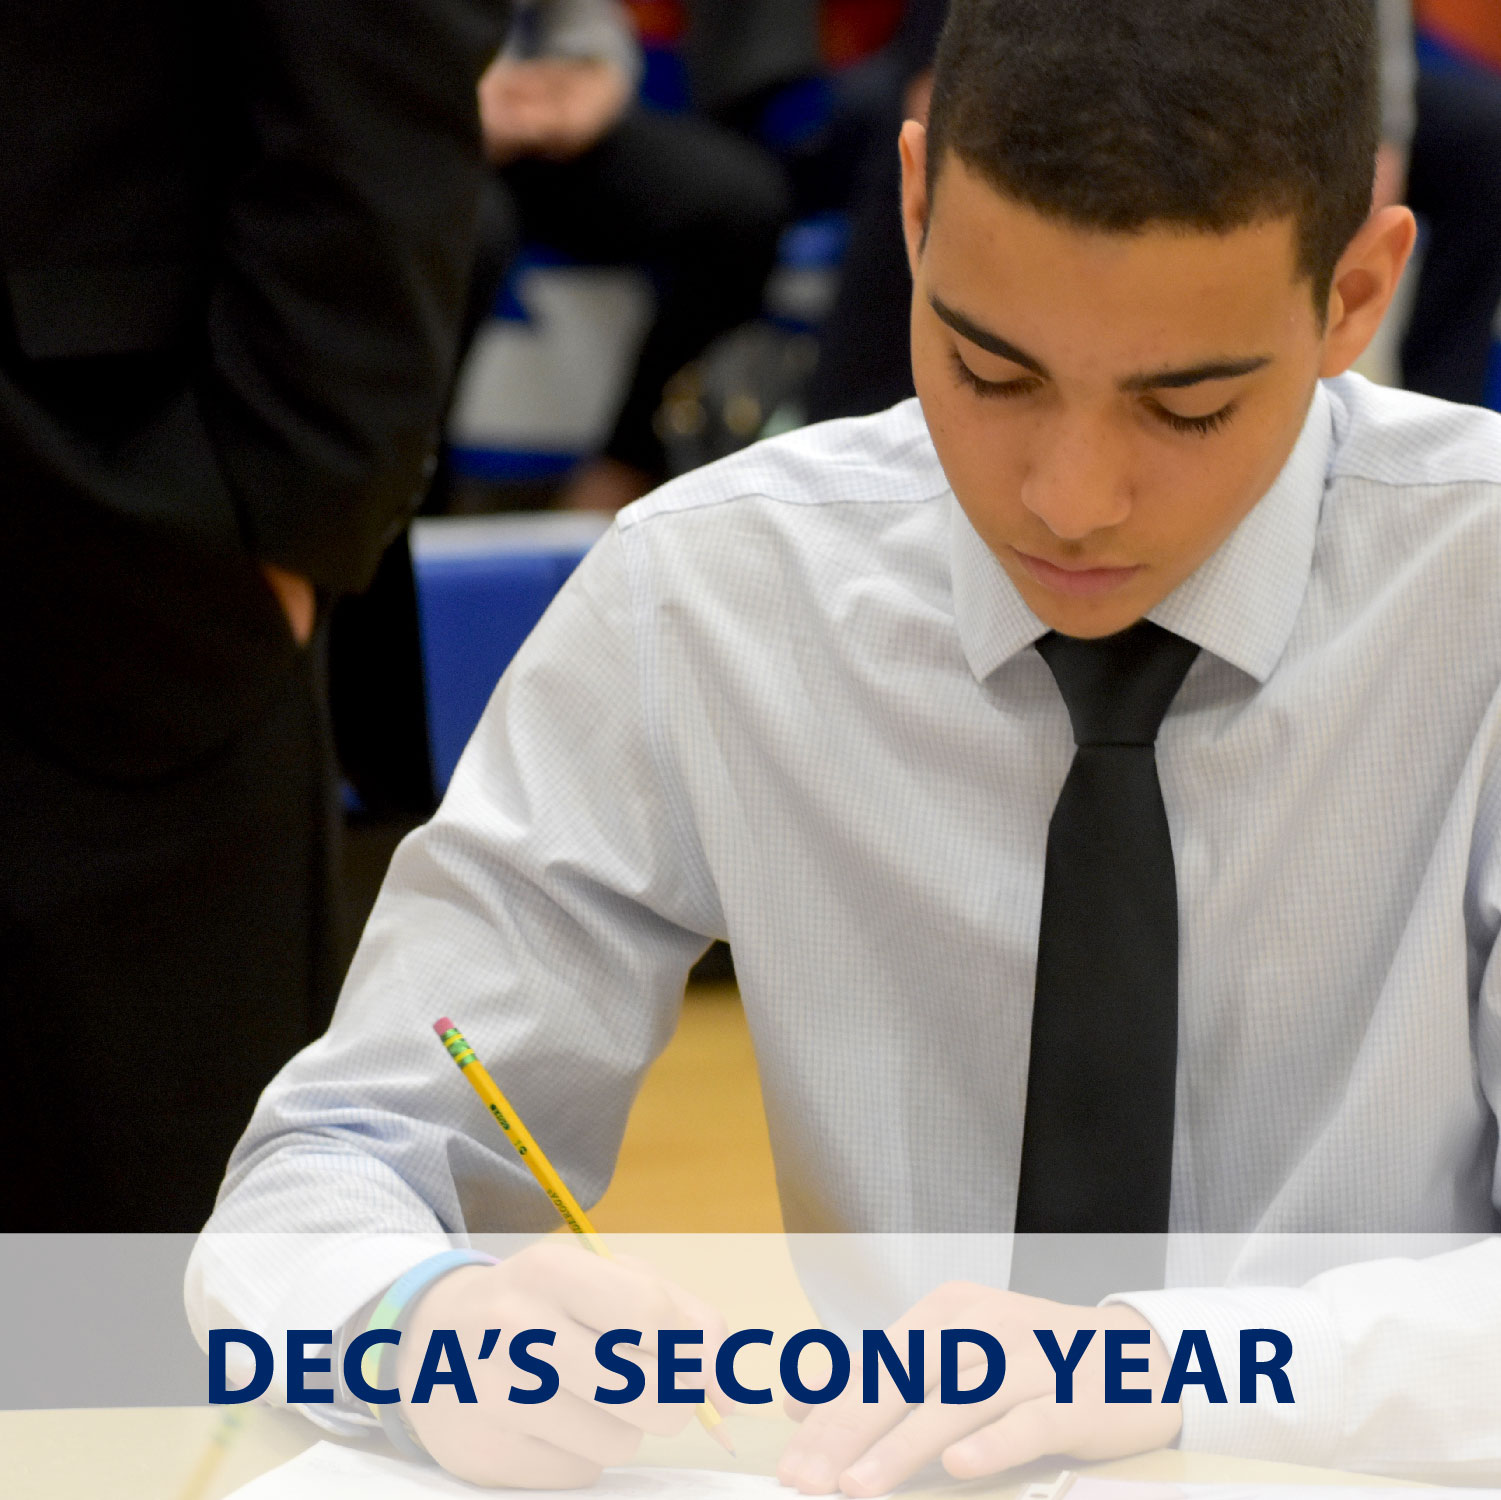 DECA's Second Year